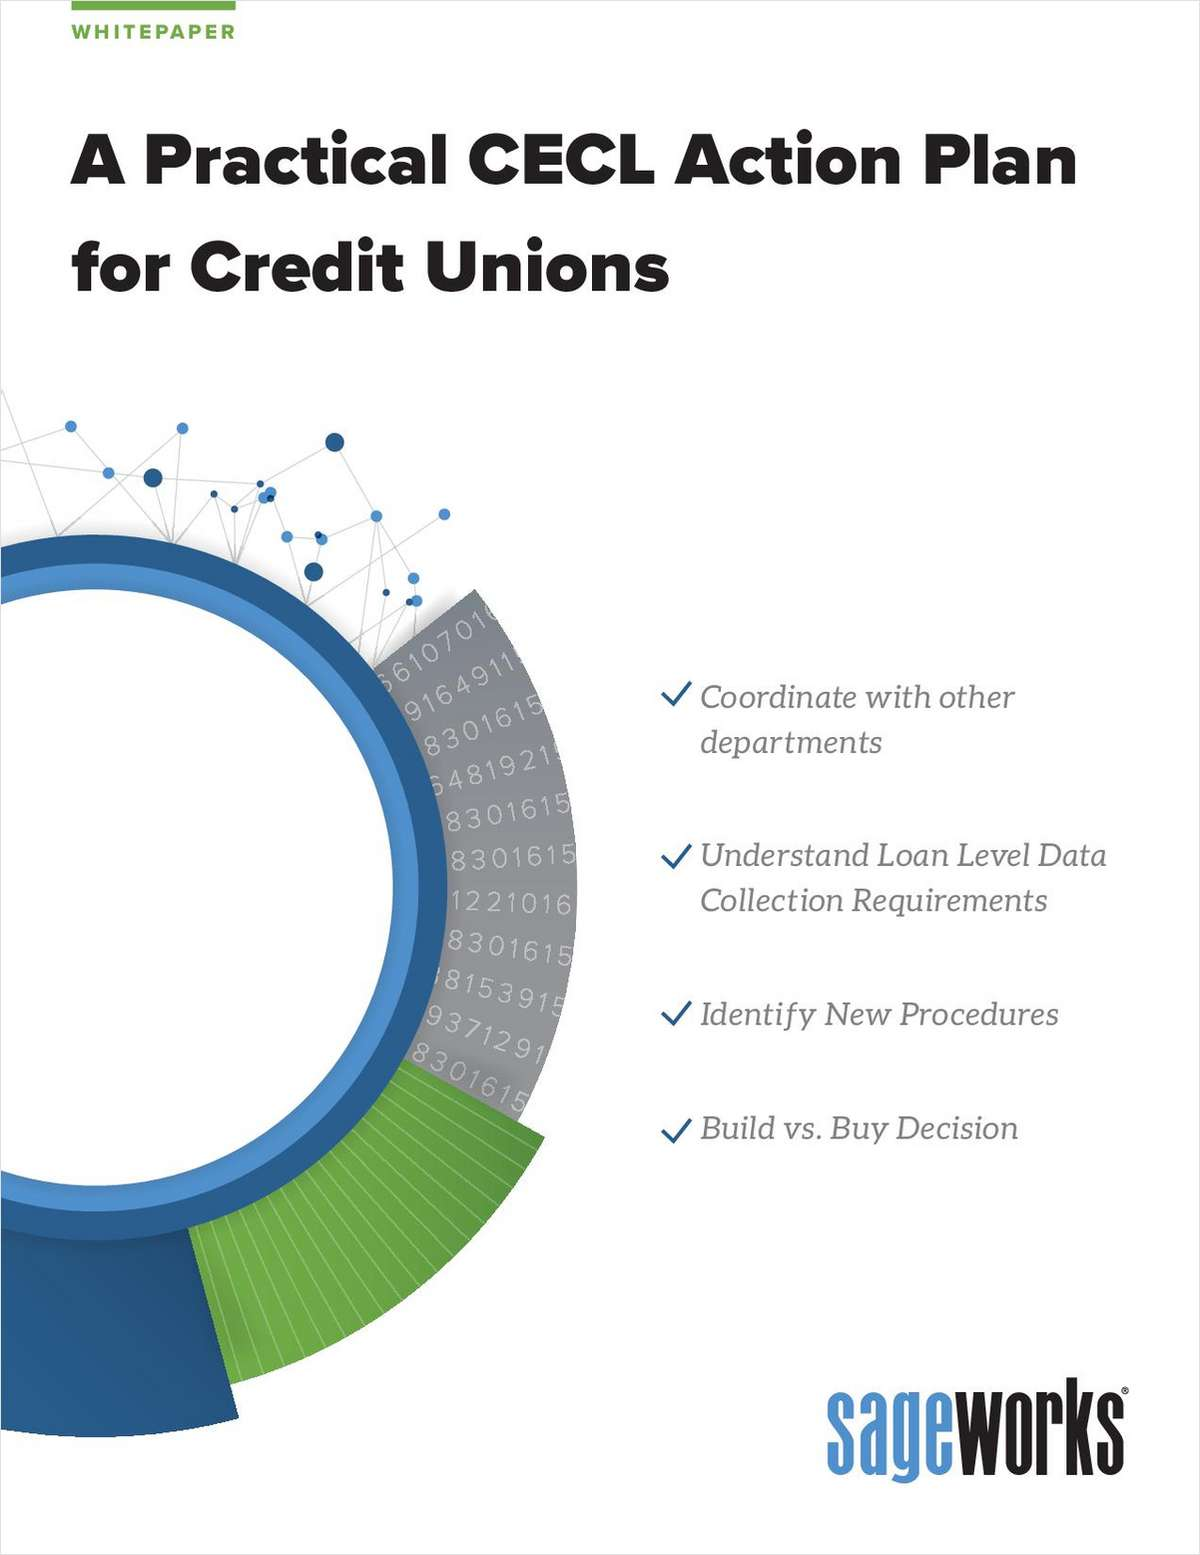 A Practical CECL Action Plan for Credit Unions